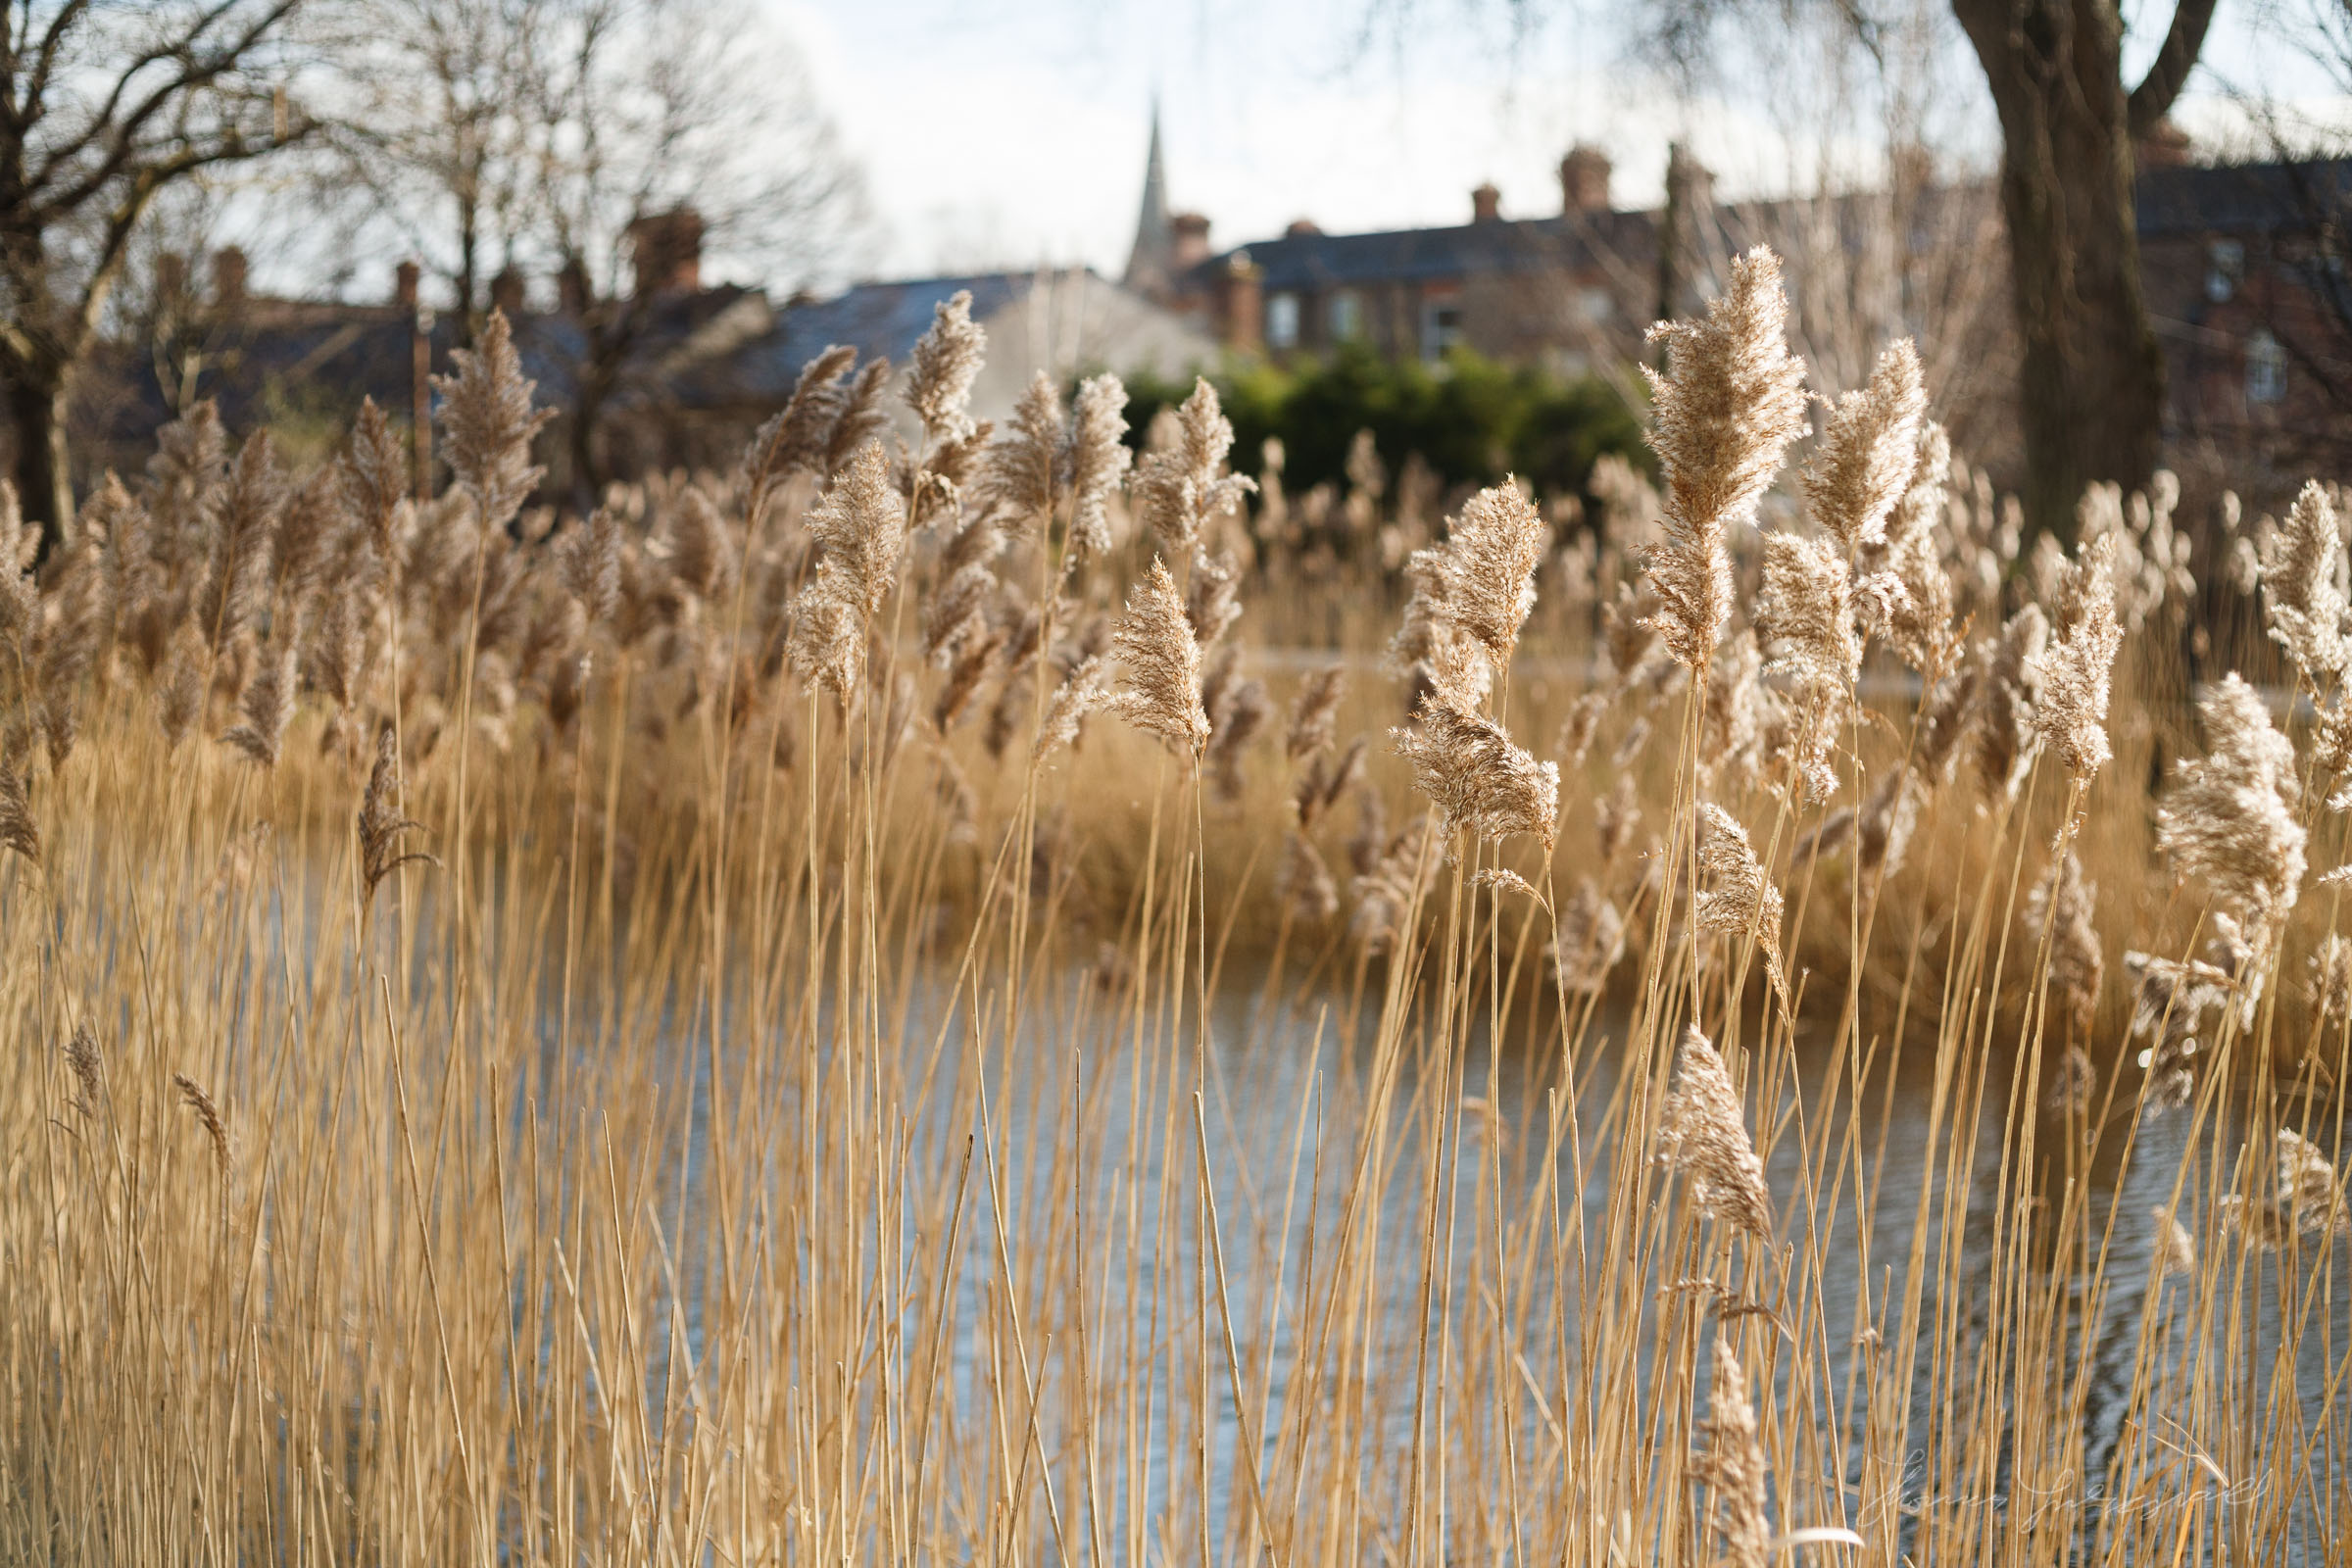 Reeds with the Canon 5D Mark 1